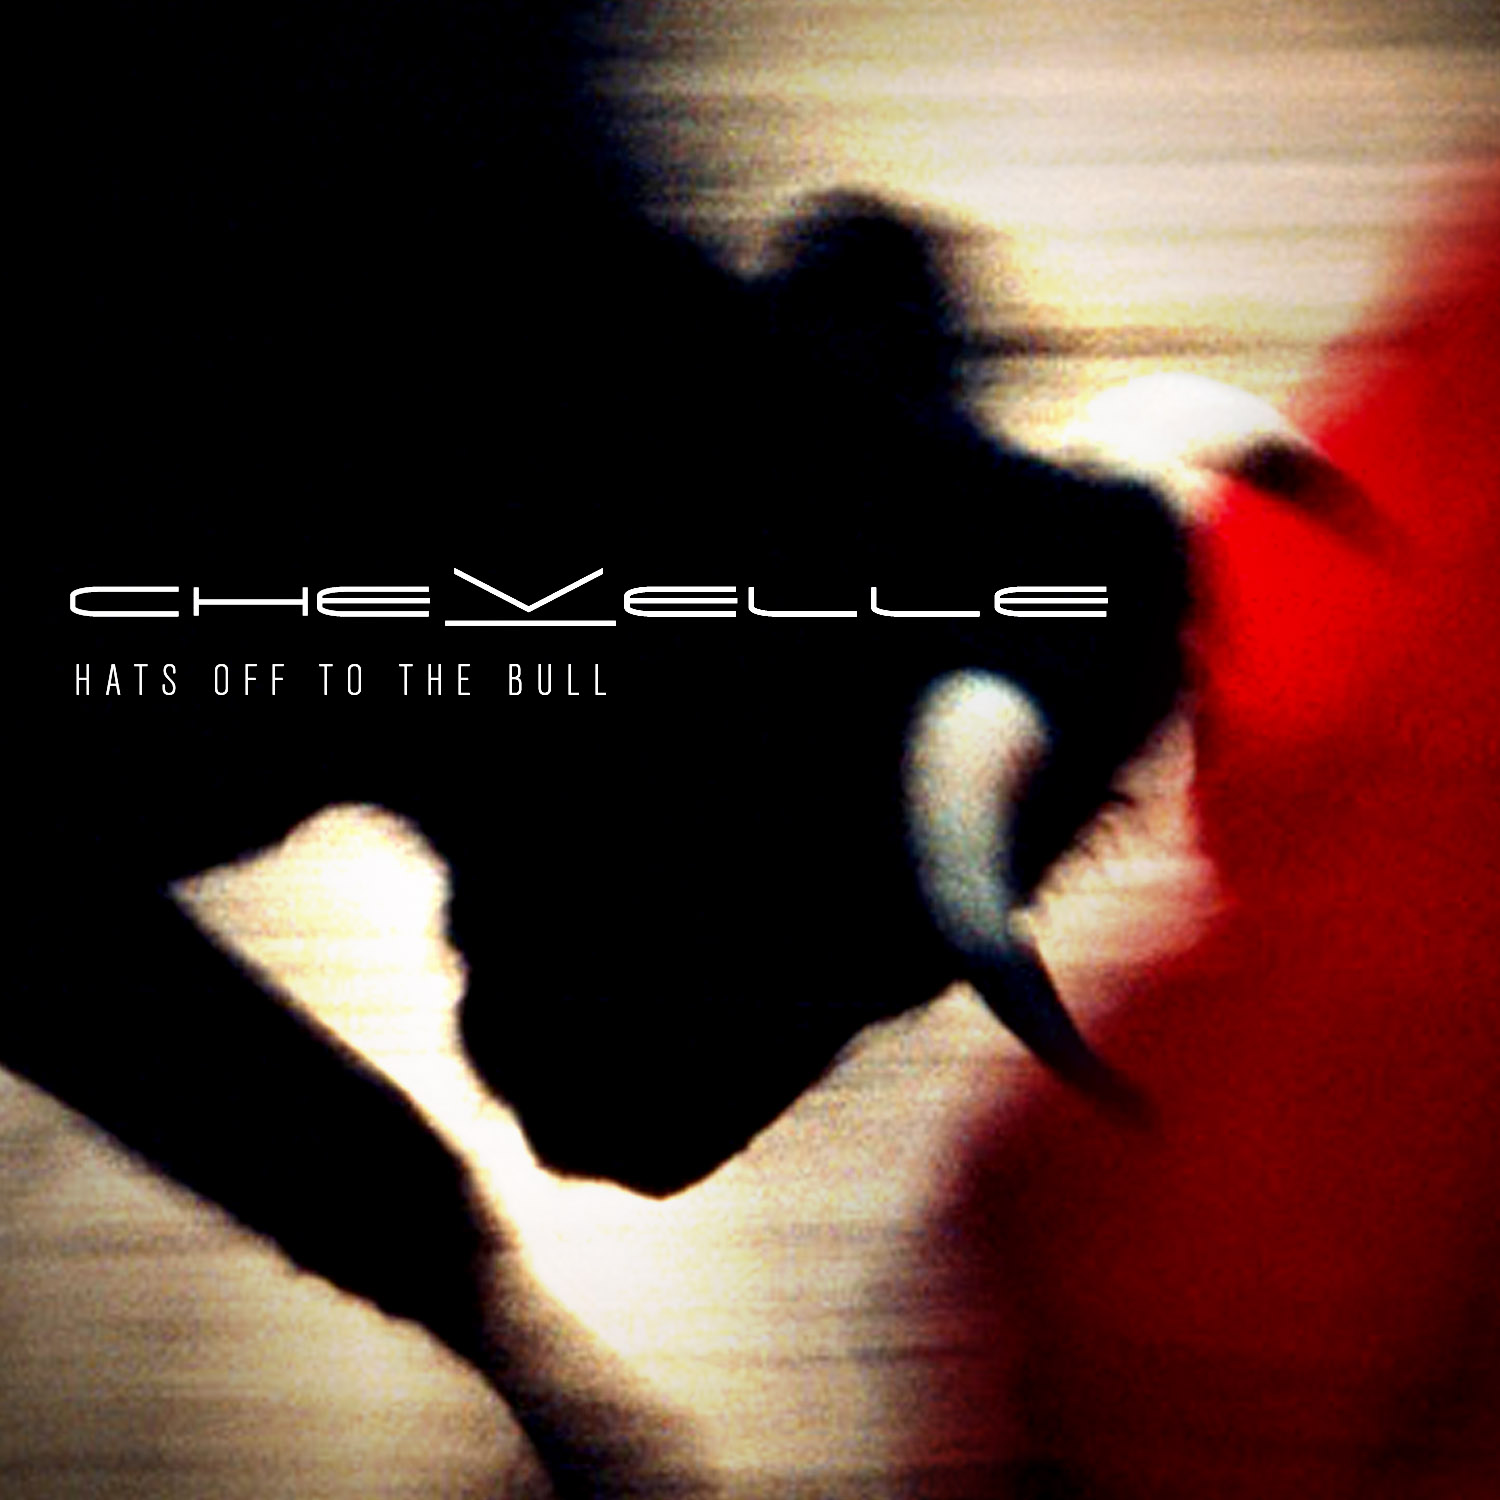 Chevelle Hats Off To The Bull Artwork